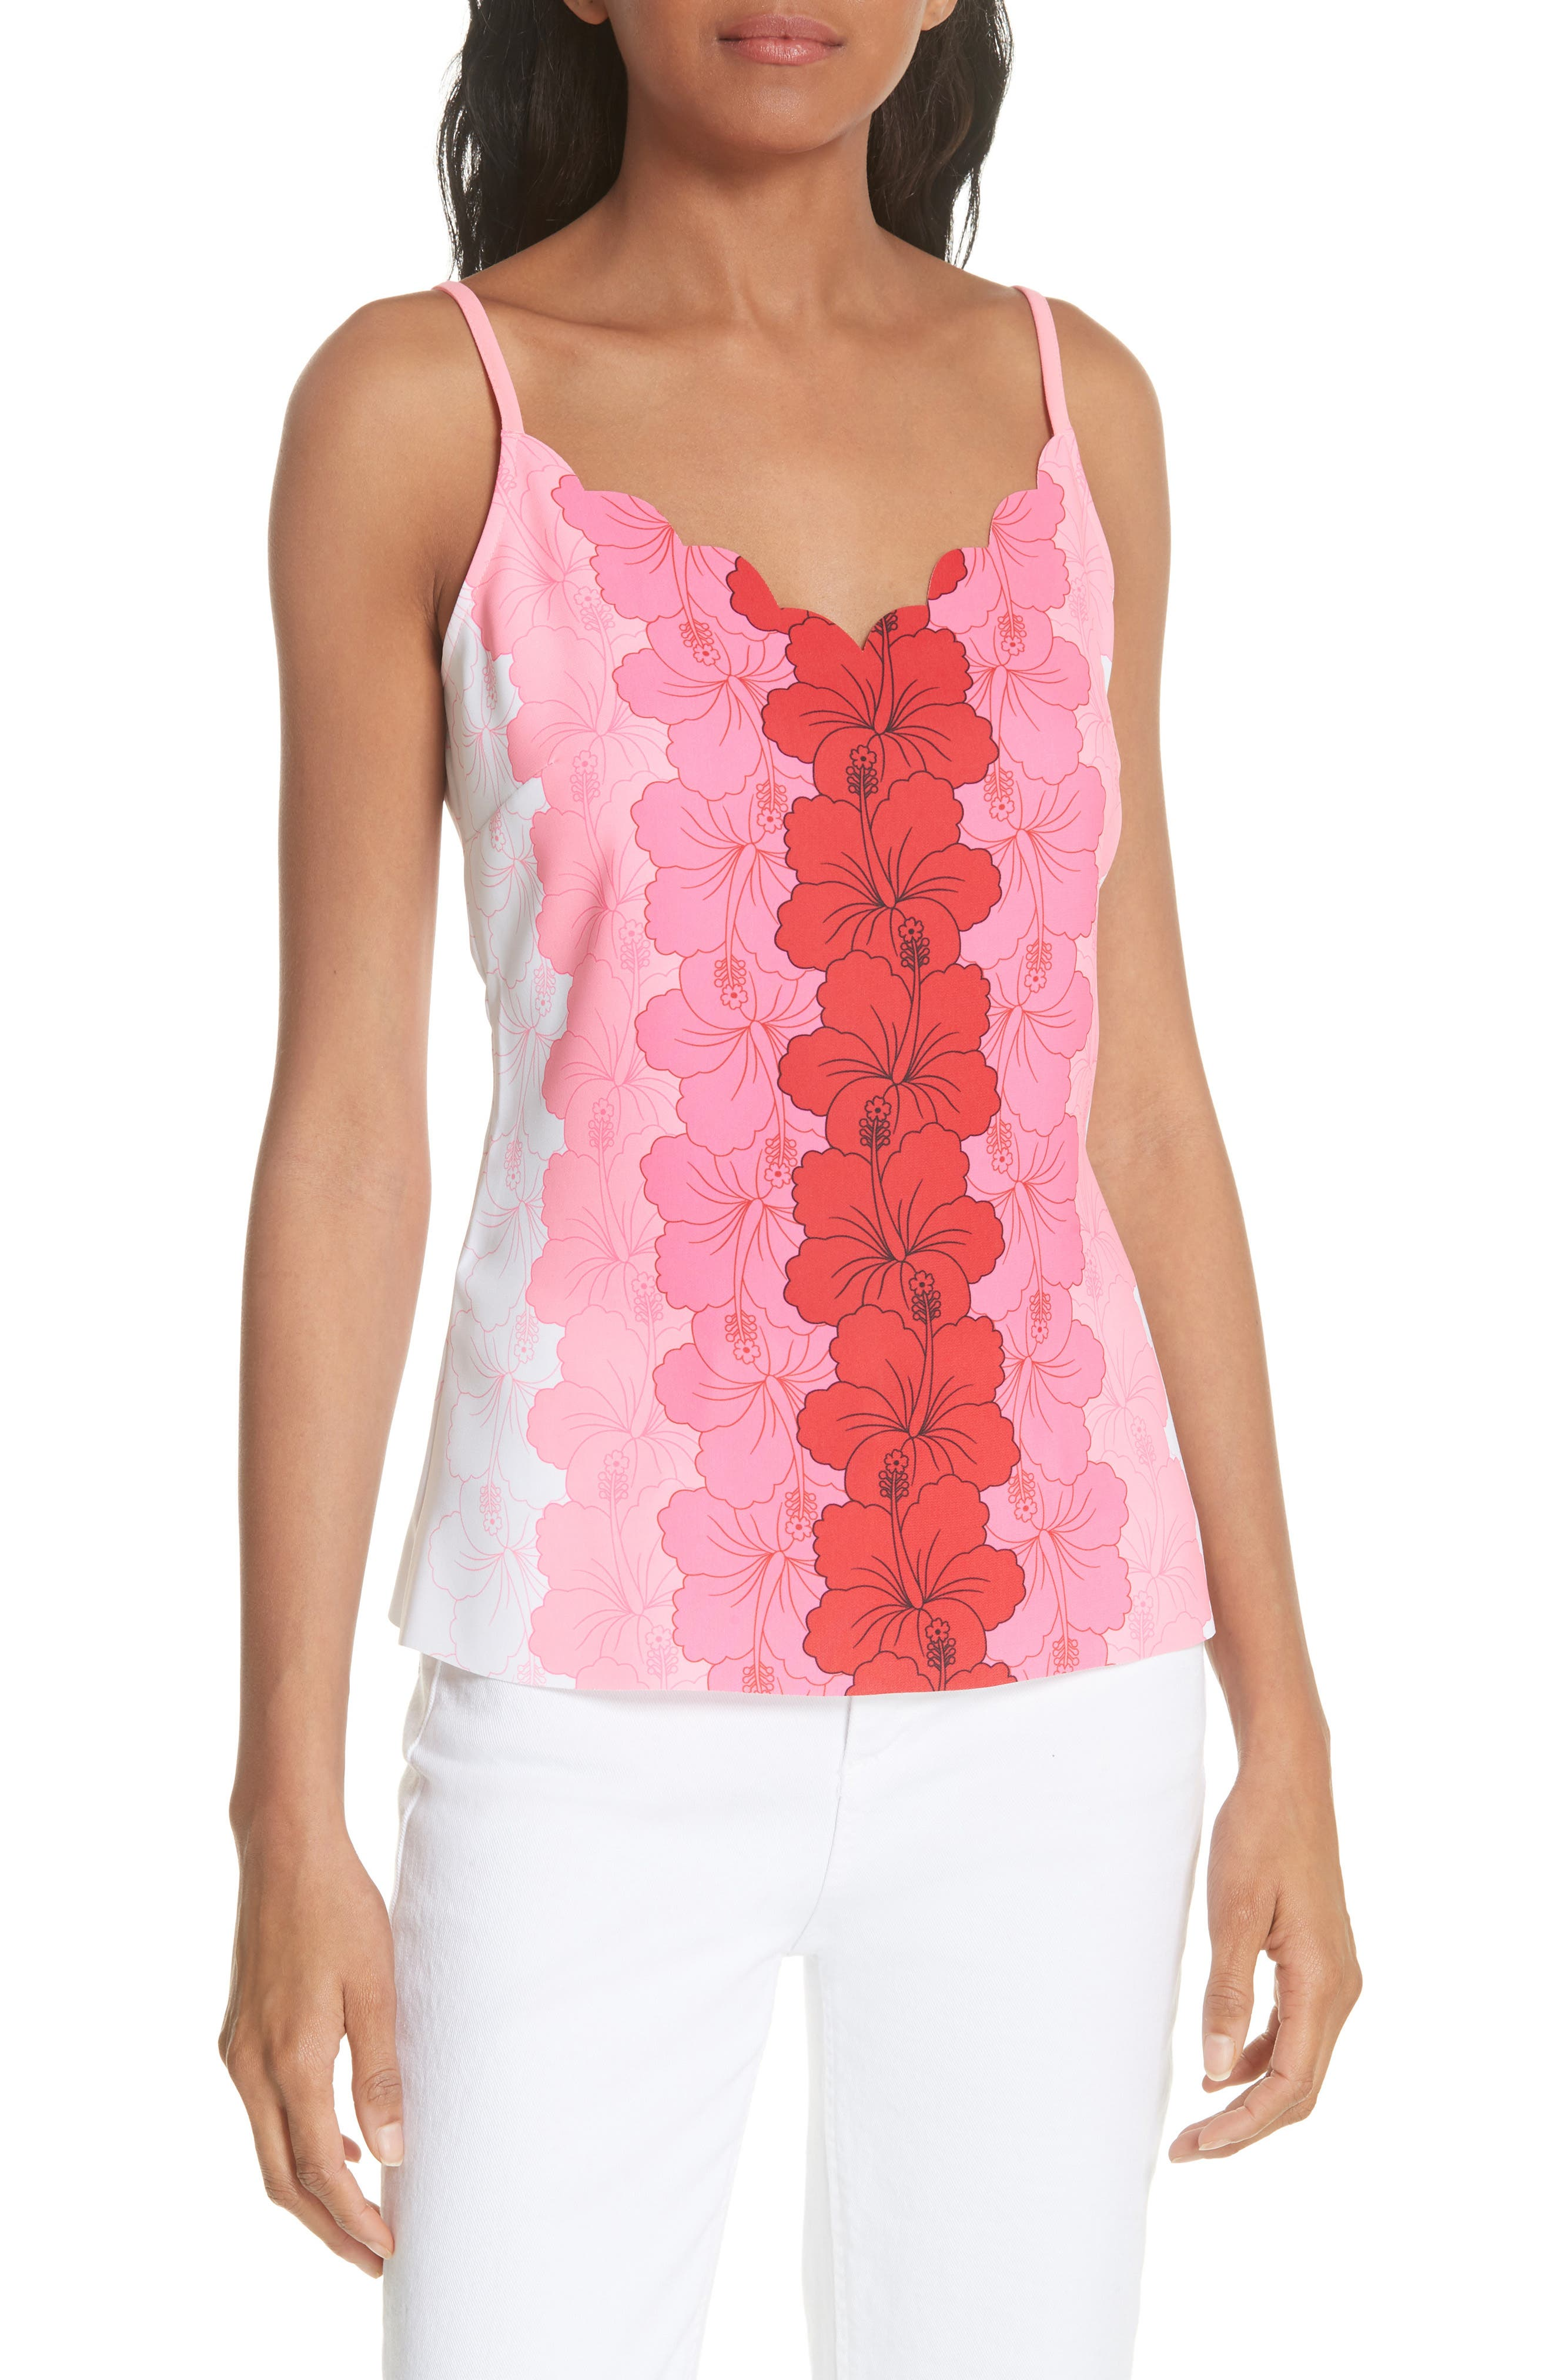 Romaa Happiness Camisole,                         Main,                         color, Neon Pink